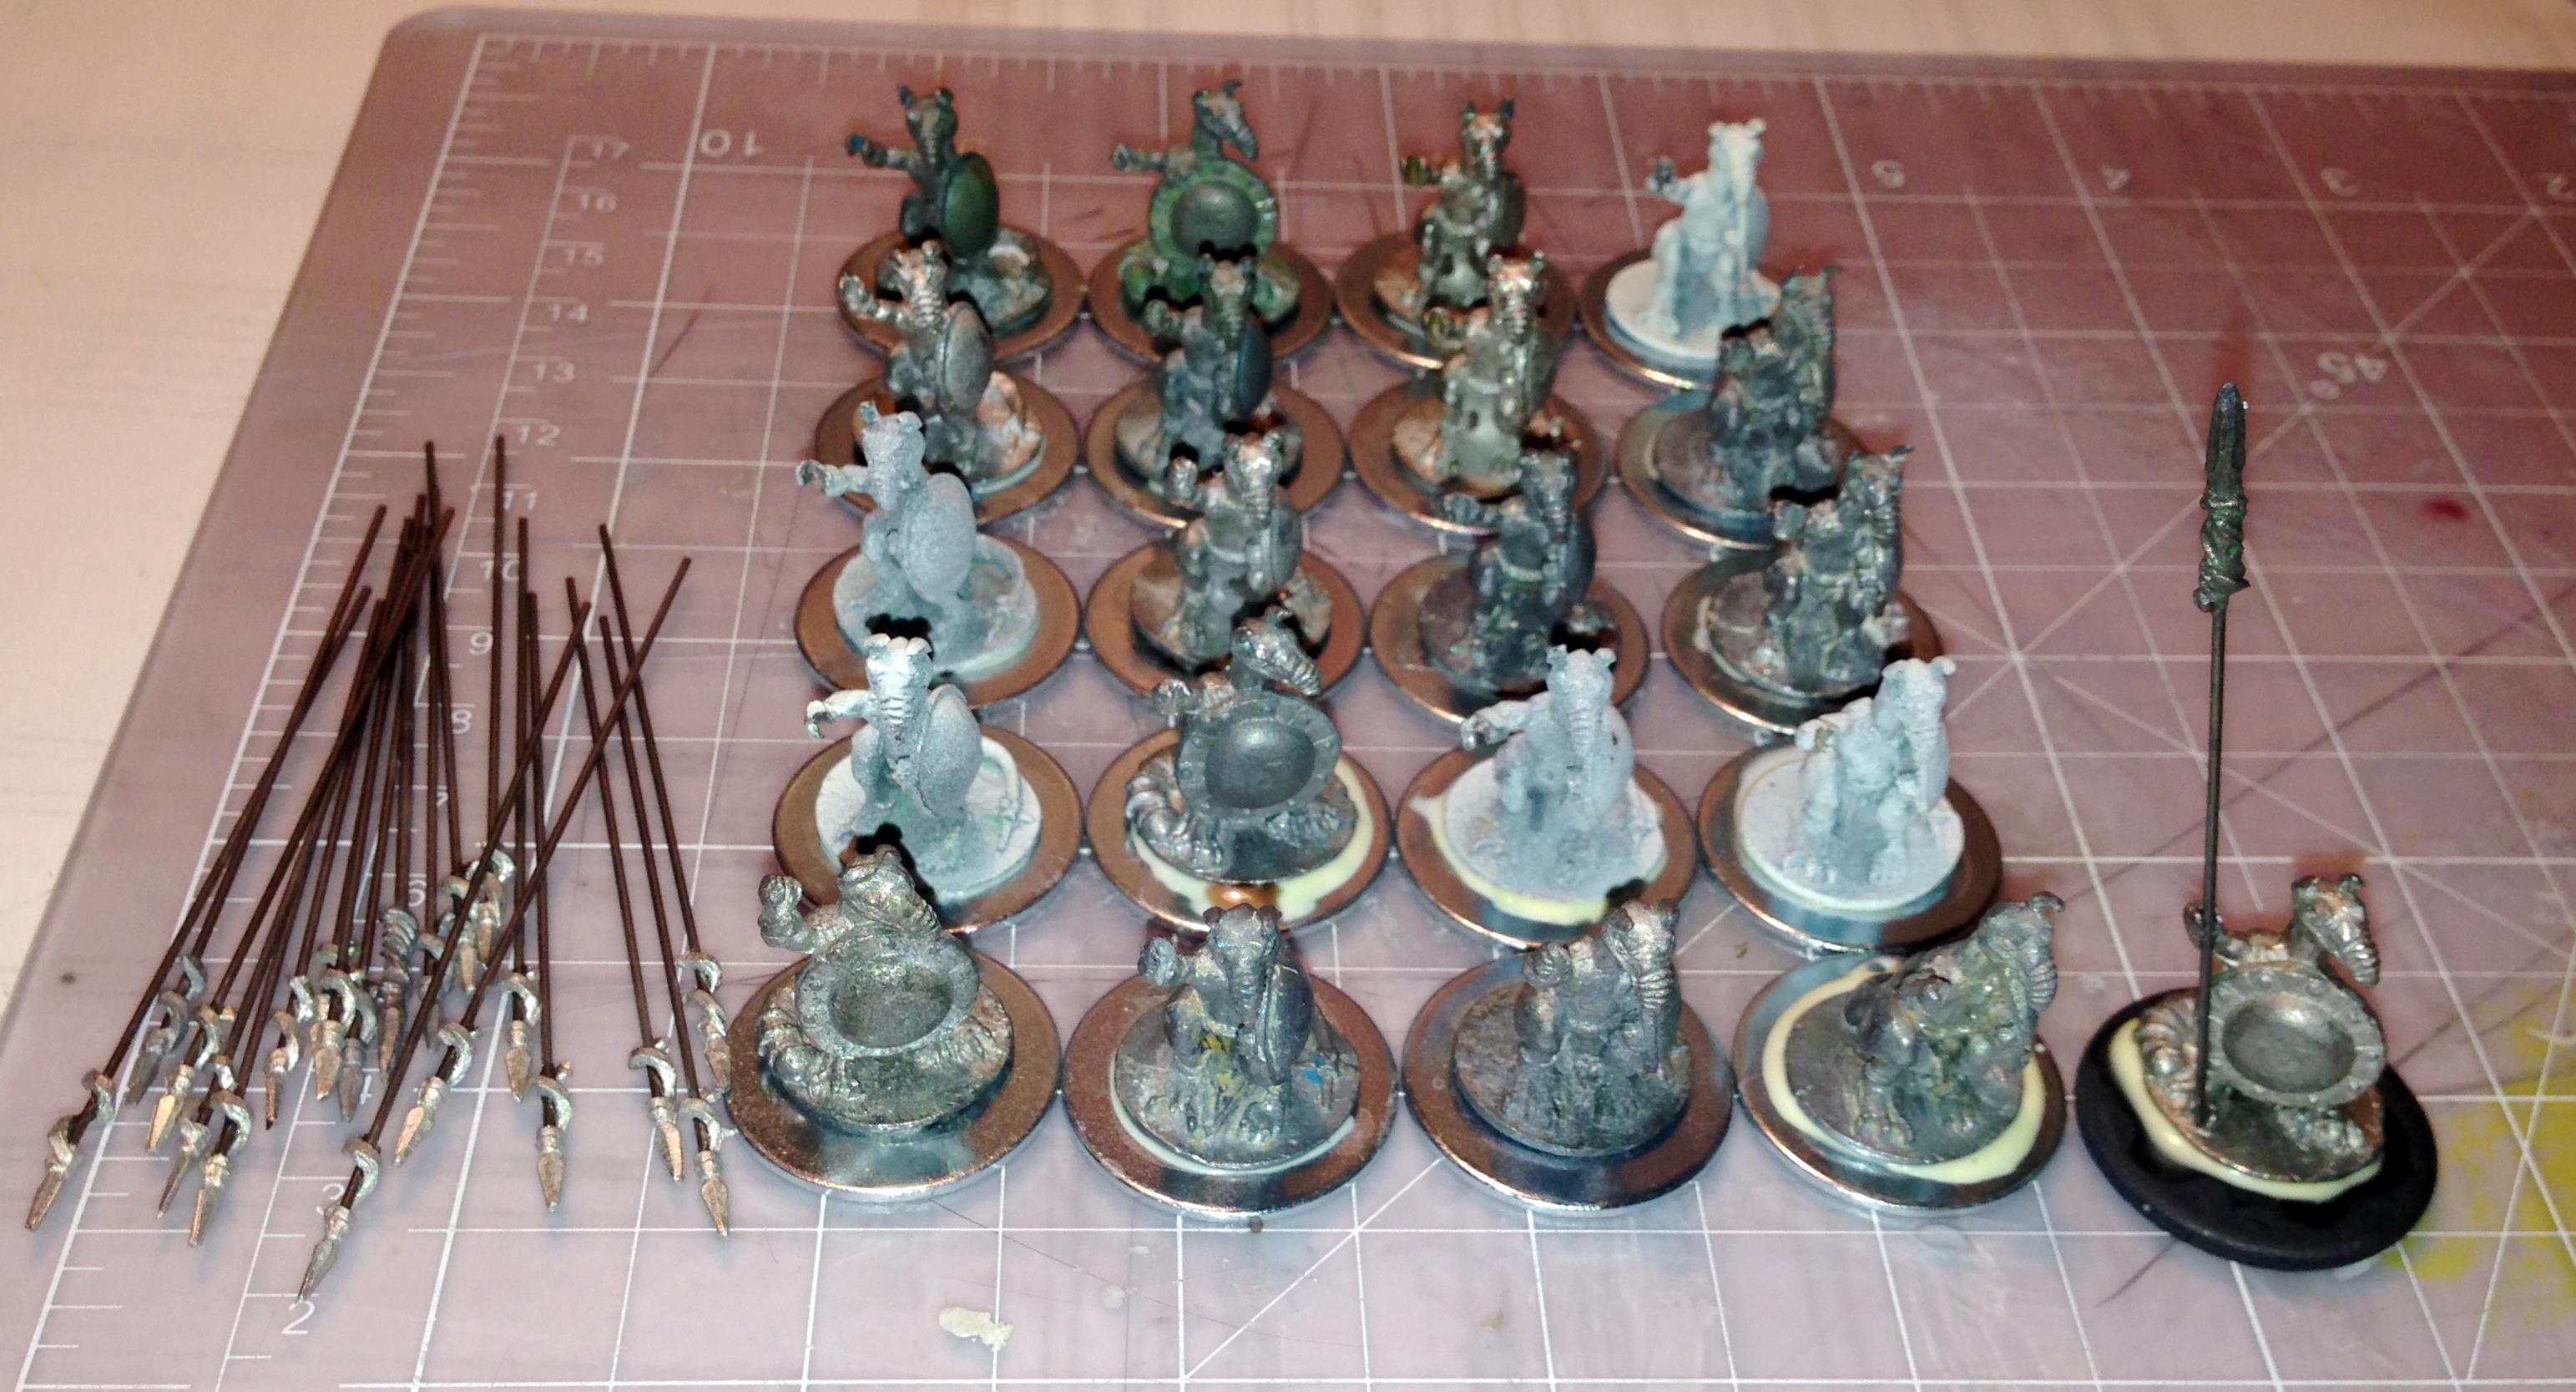 3a mounted on bases and pikes